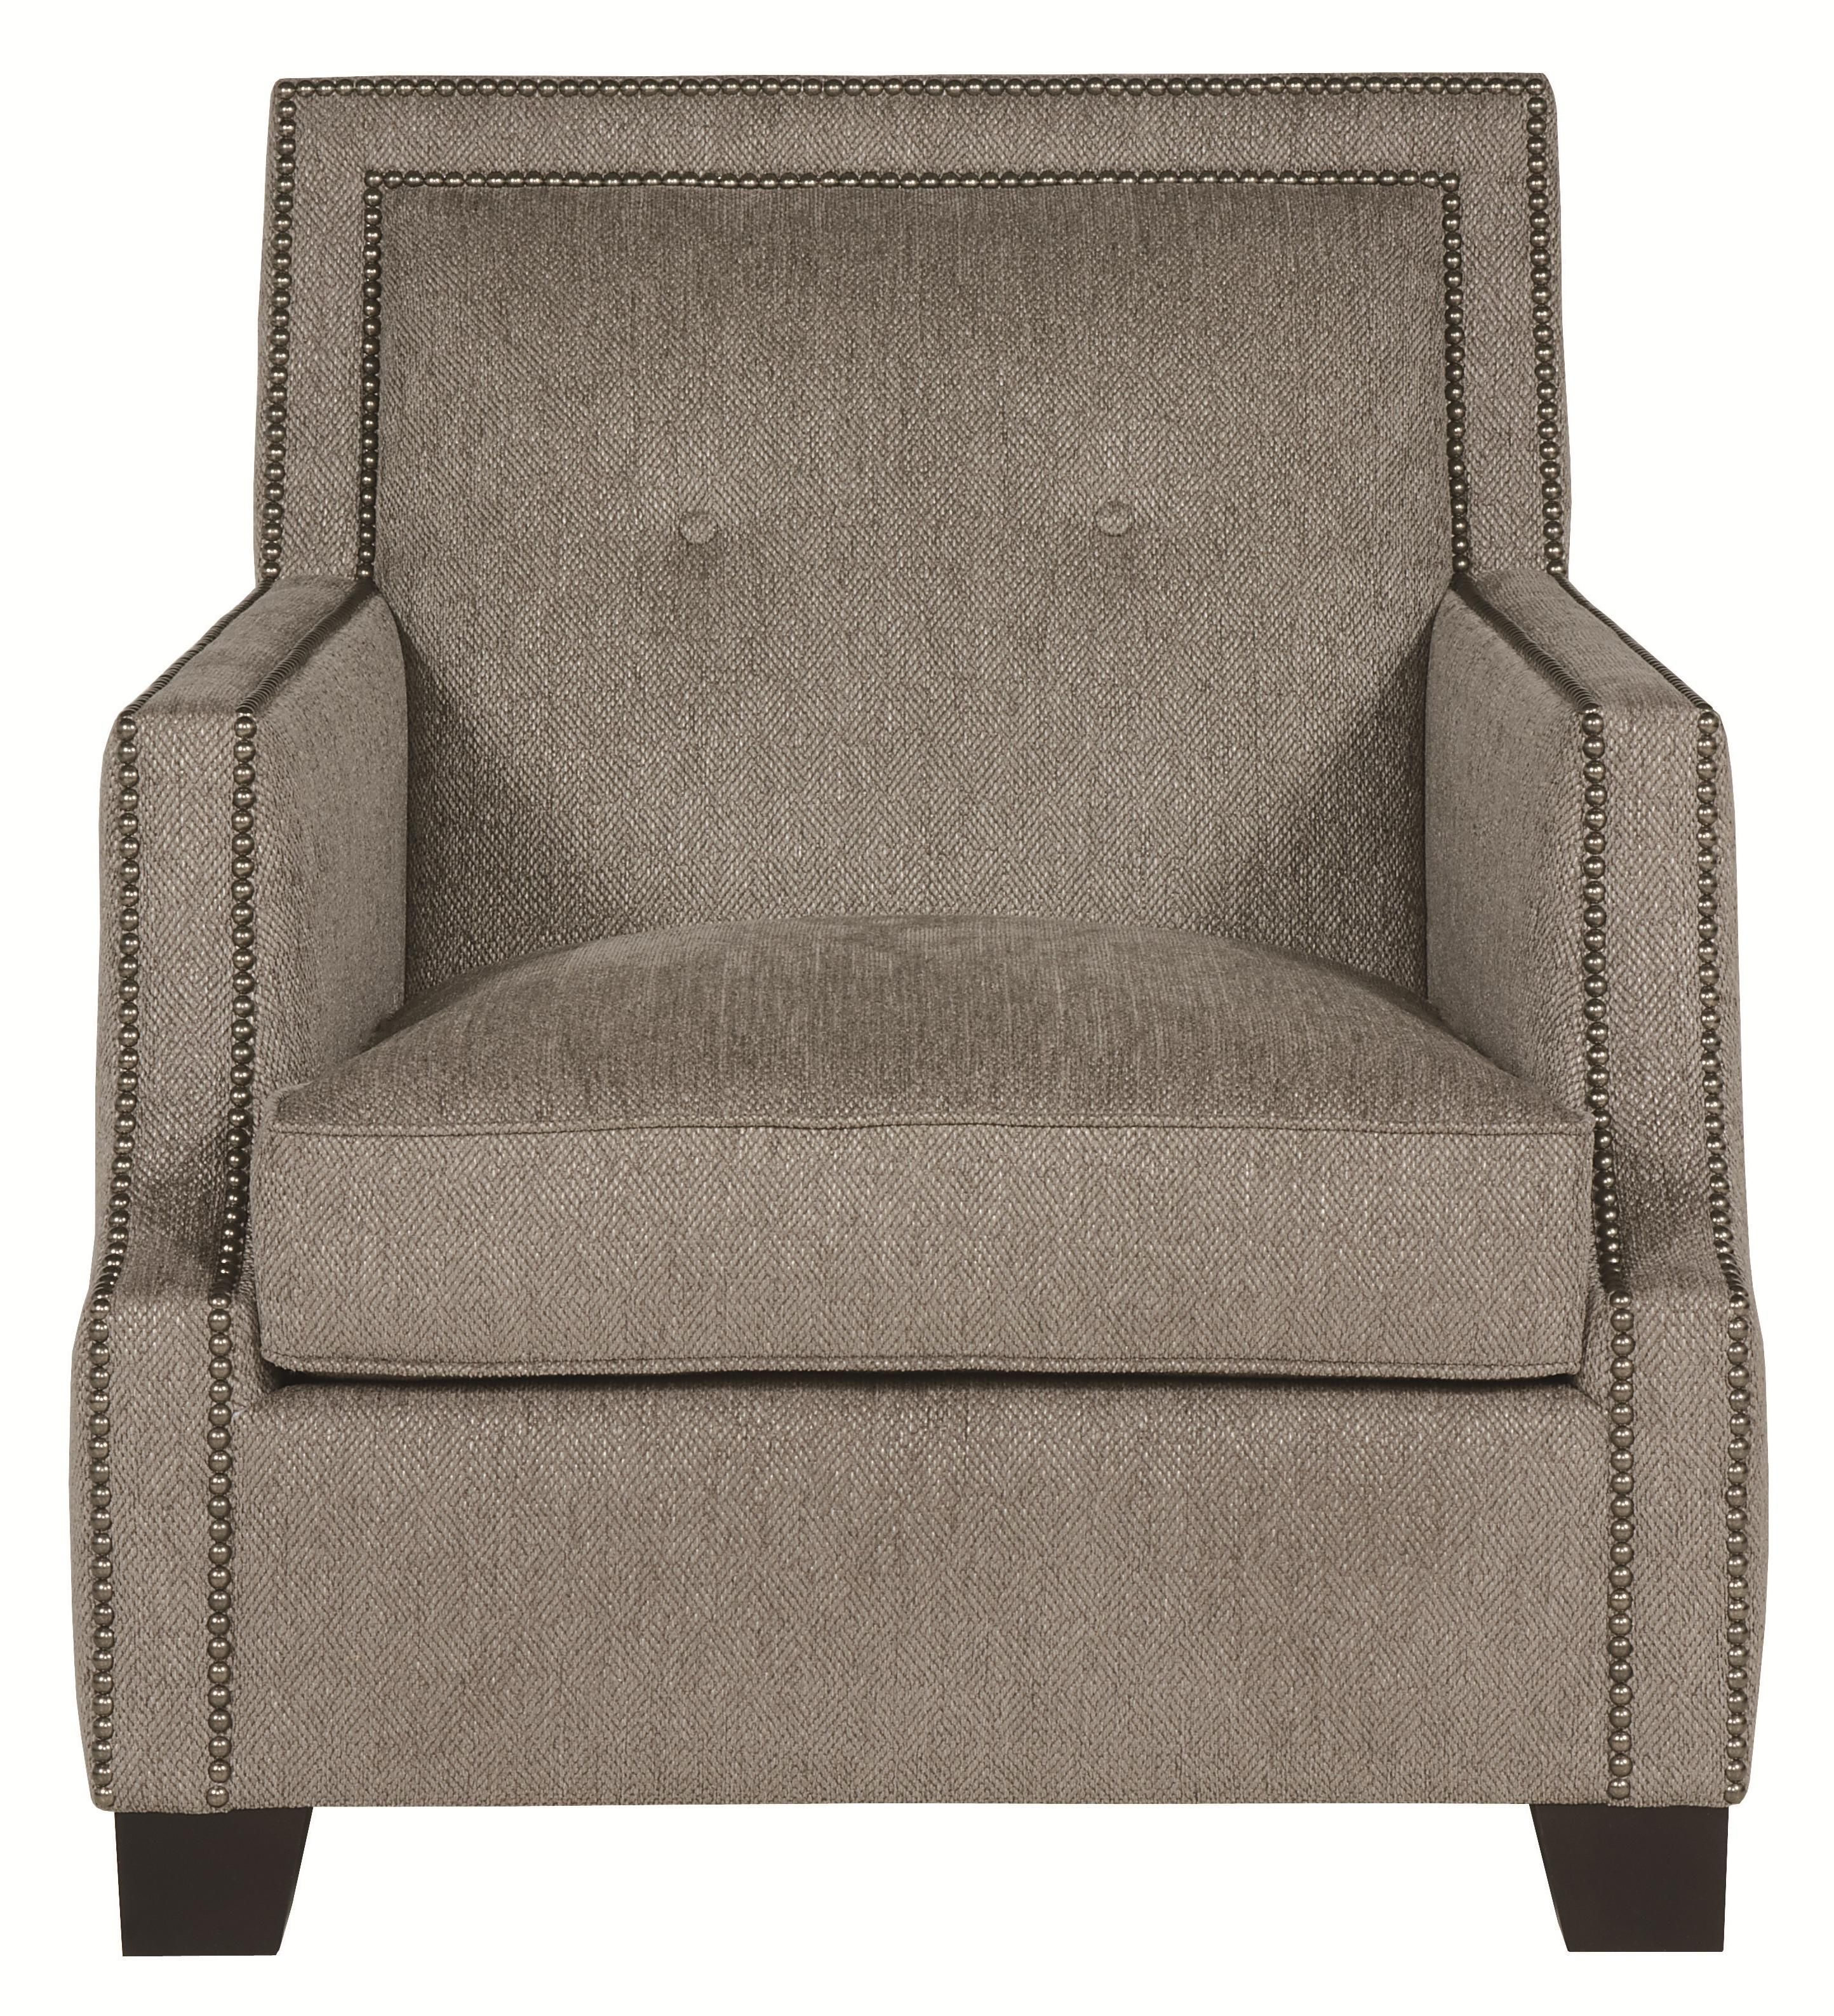 Interiors Franco Well Crafted Accent Chair With High End